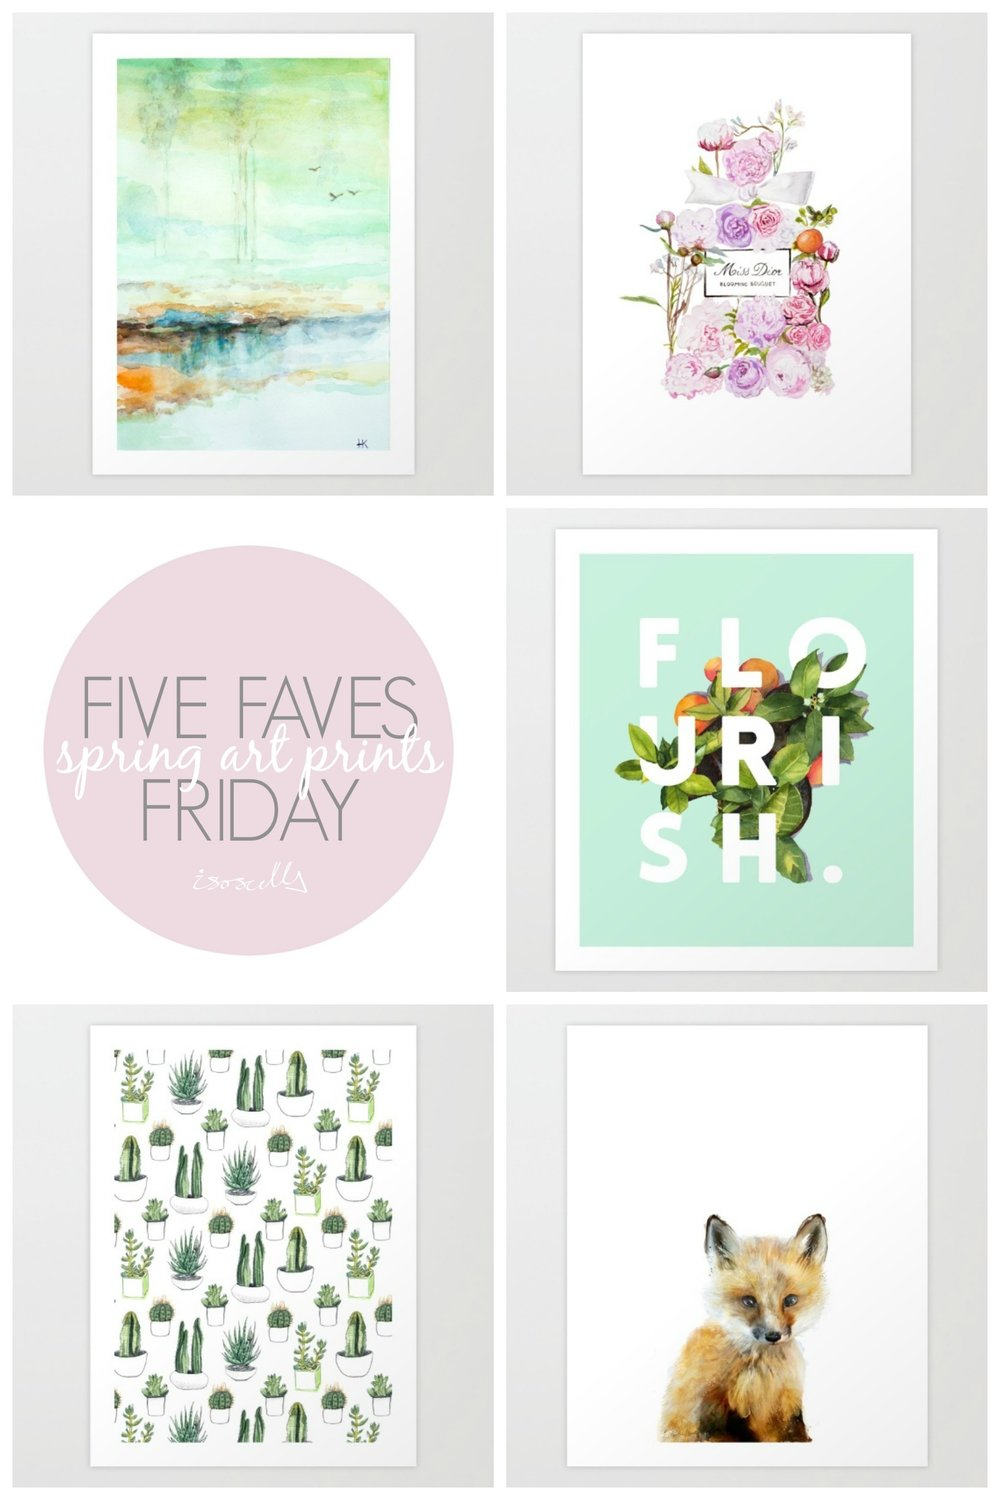 Five Faves Friday // Spring Art Prints - Isoscella